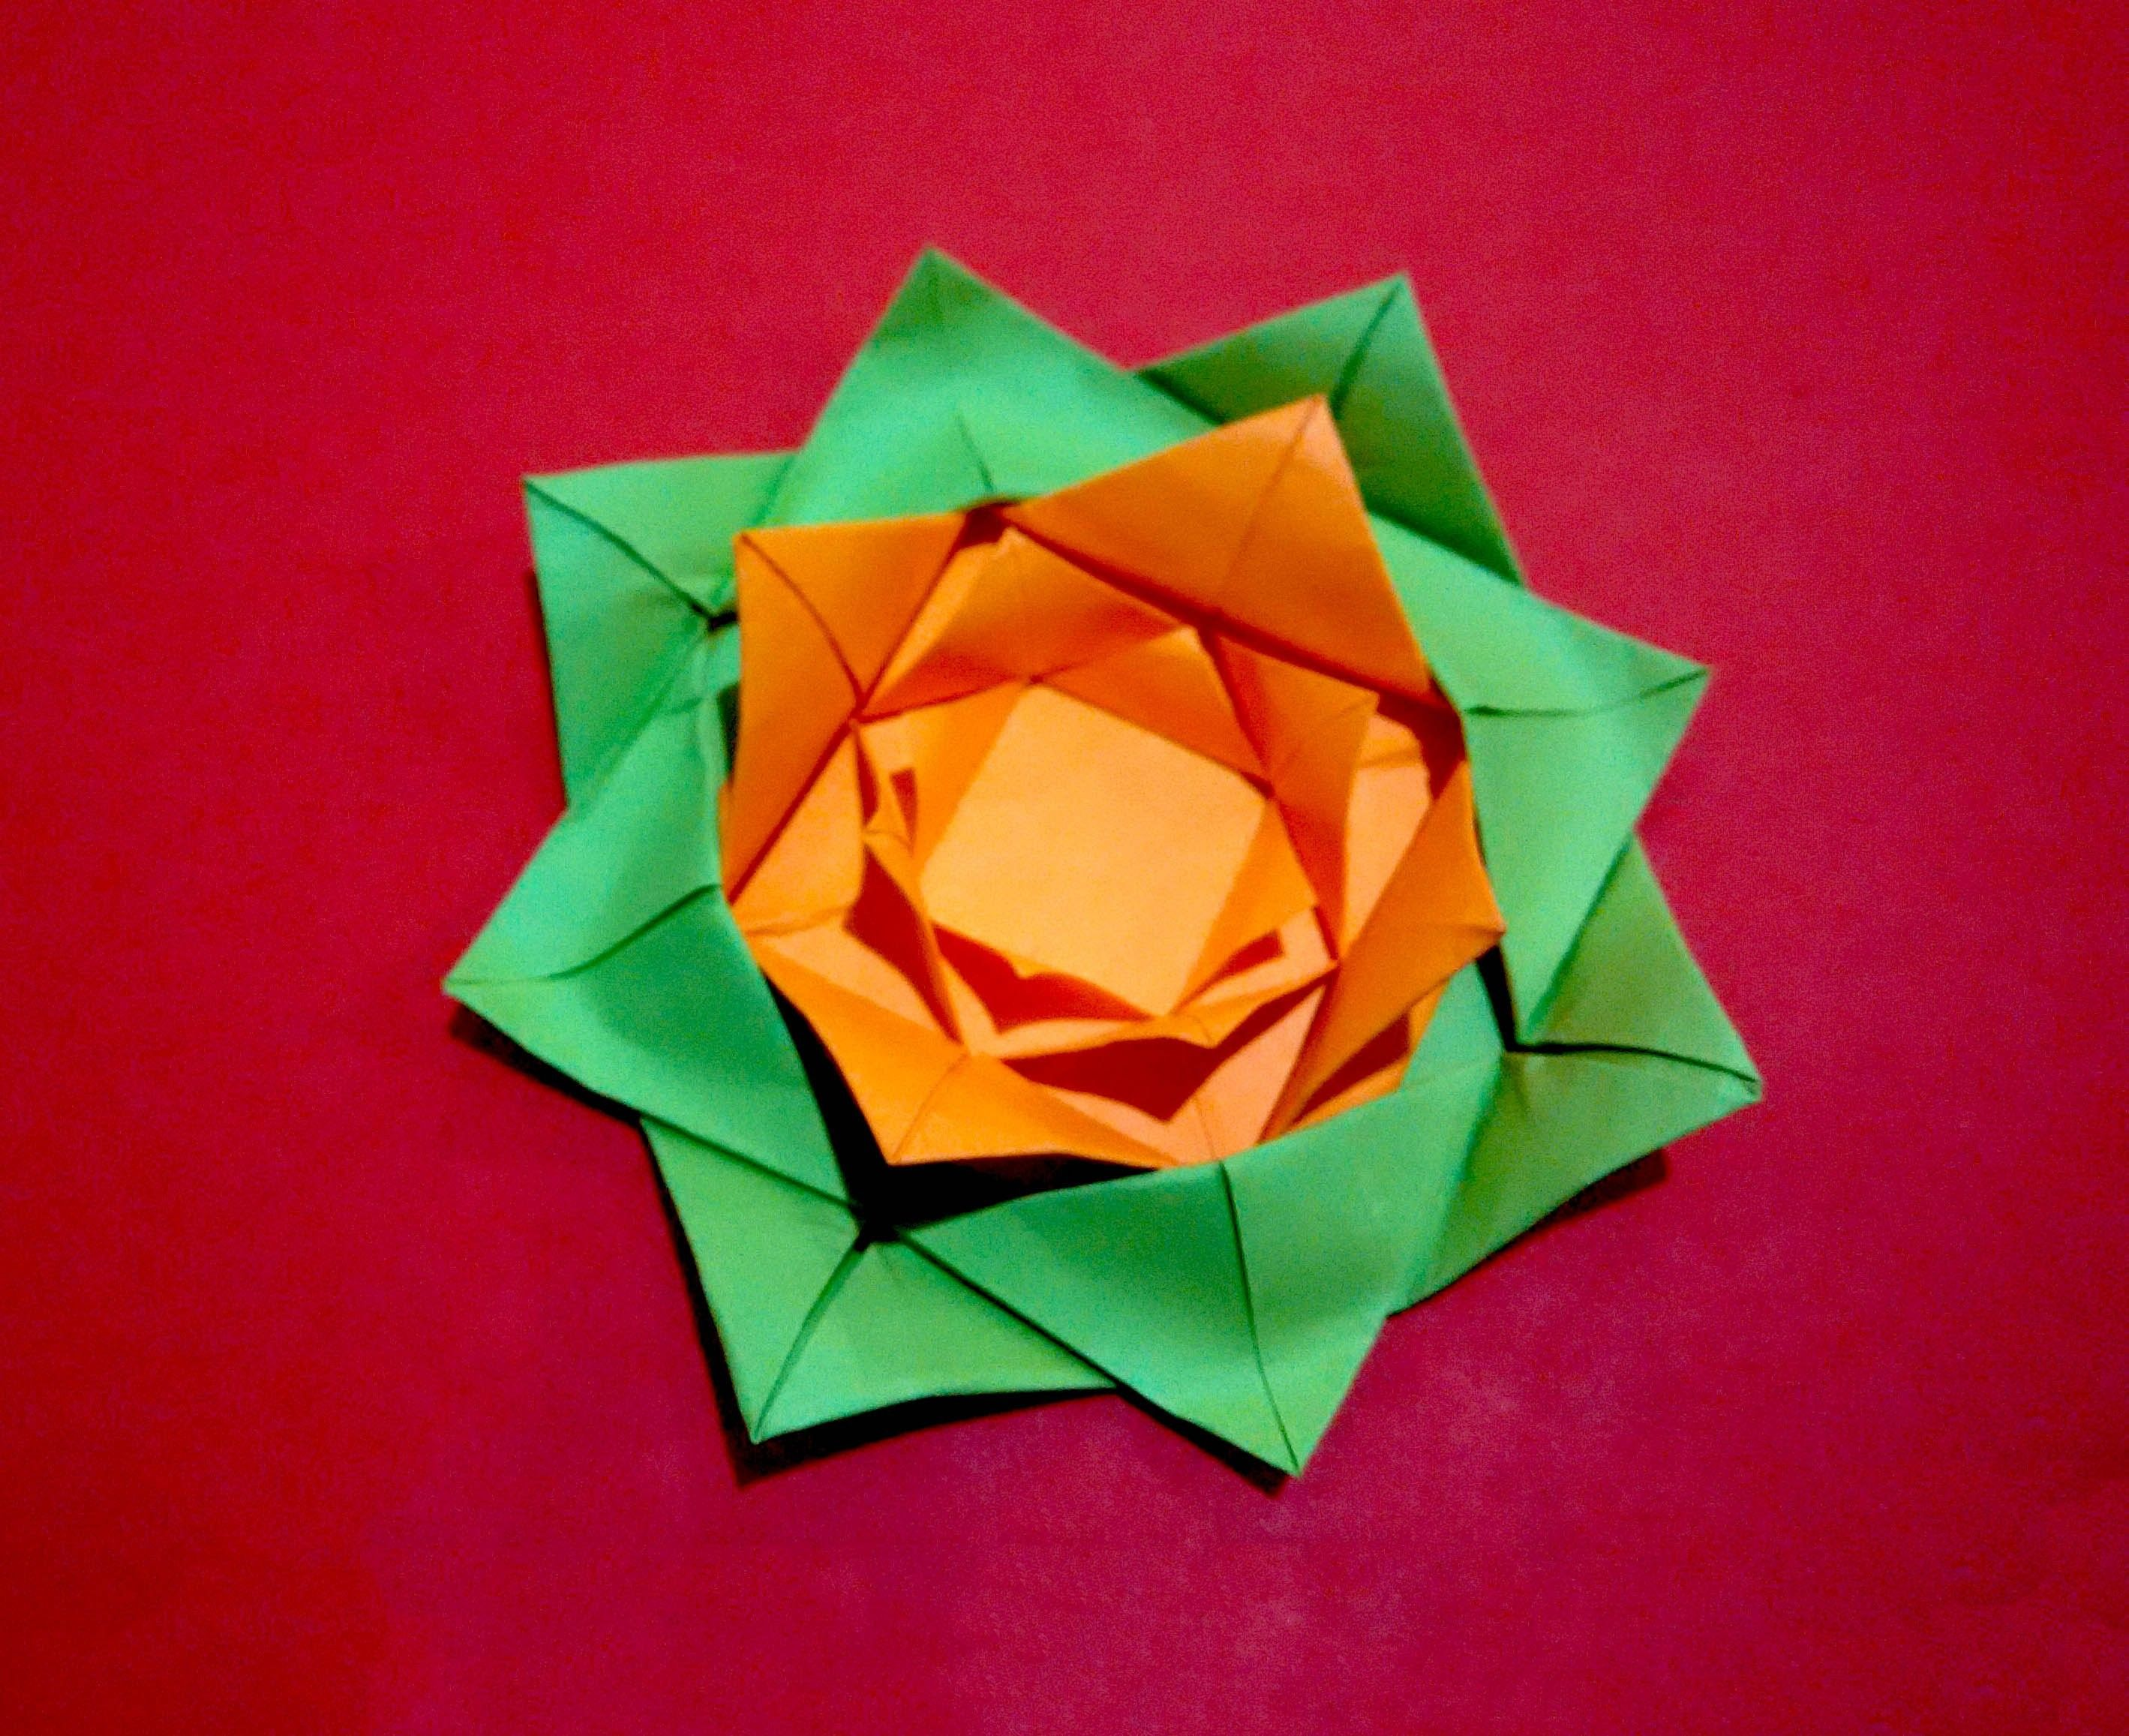 Easy paper flower origami rose flower ideas for easter gift how to make an easy origami flower kusudama for kids easy and rich paper flower ideas for mothers day paper bouquet diy womans day mightylinksfo Image collections